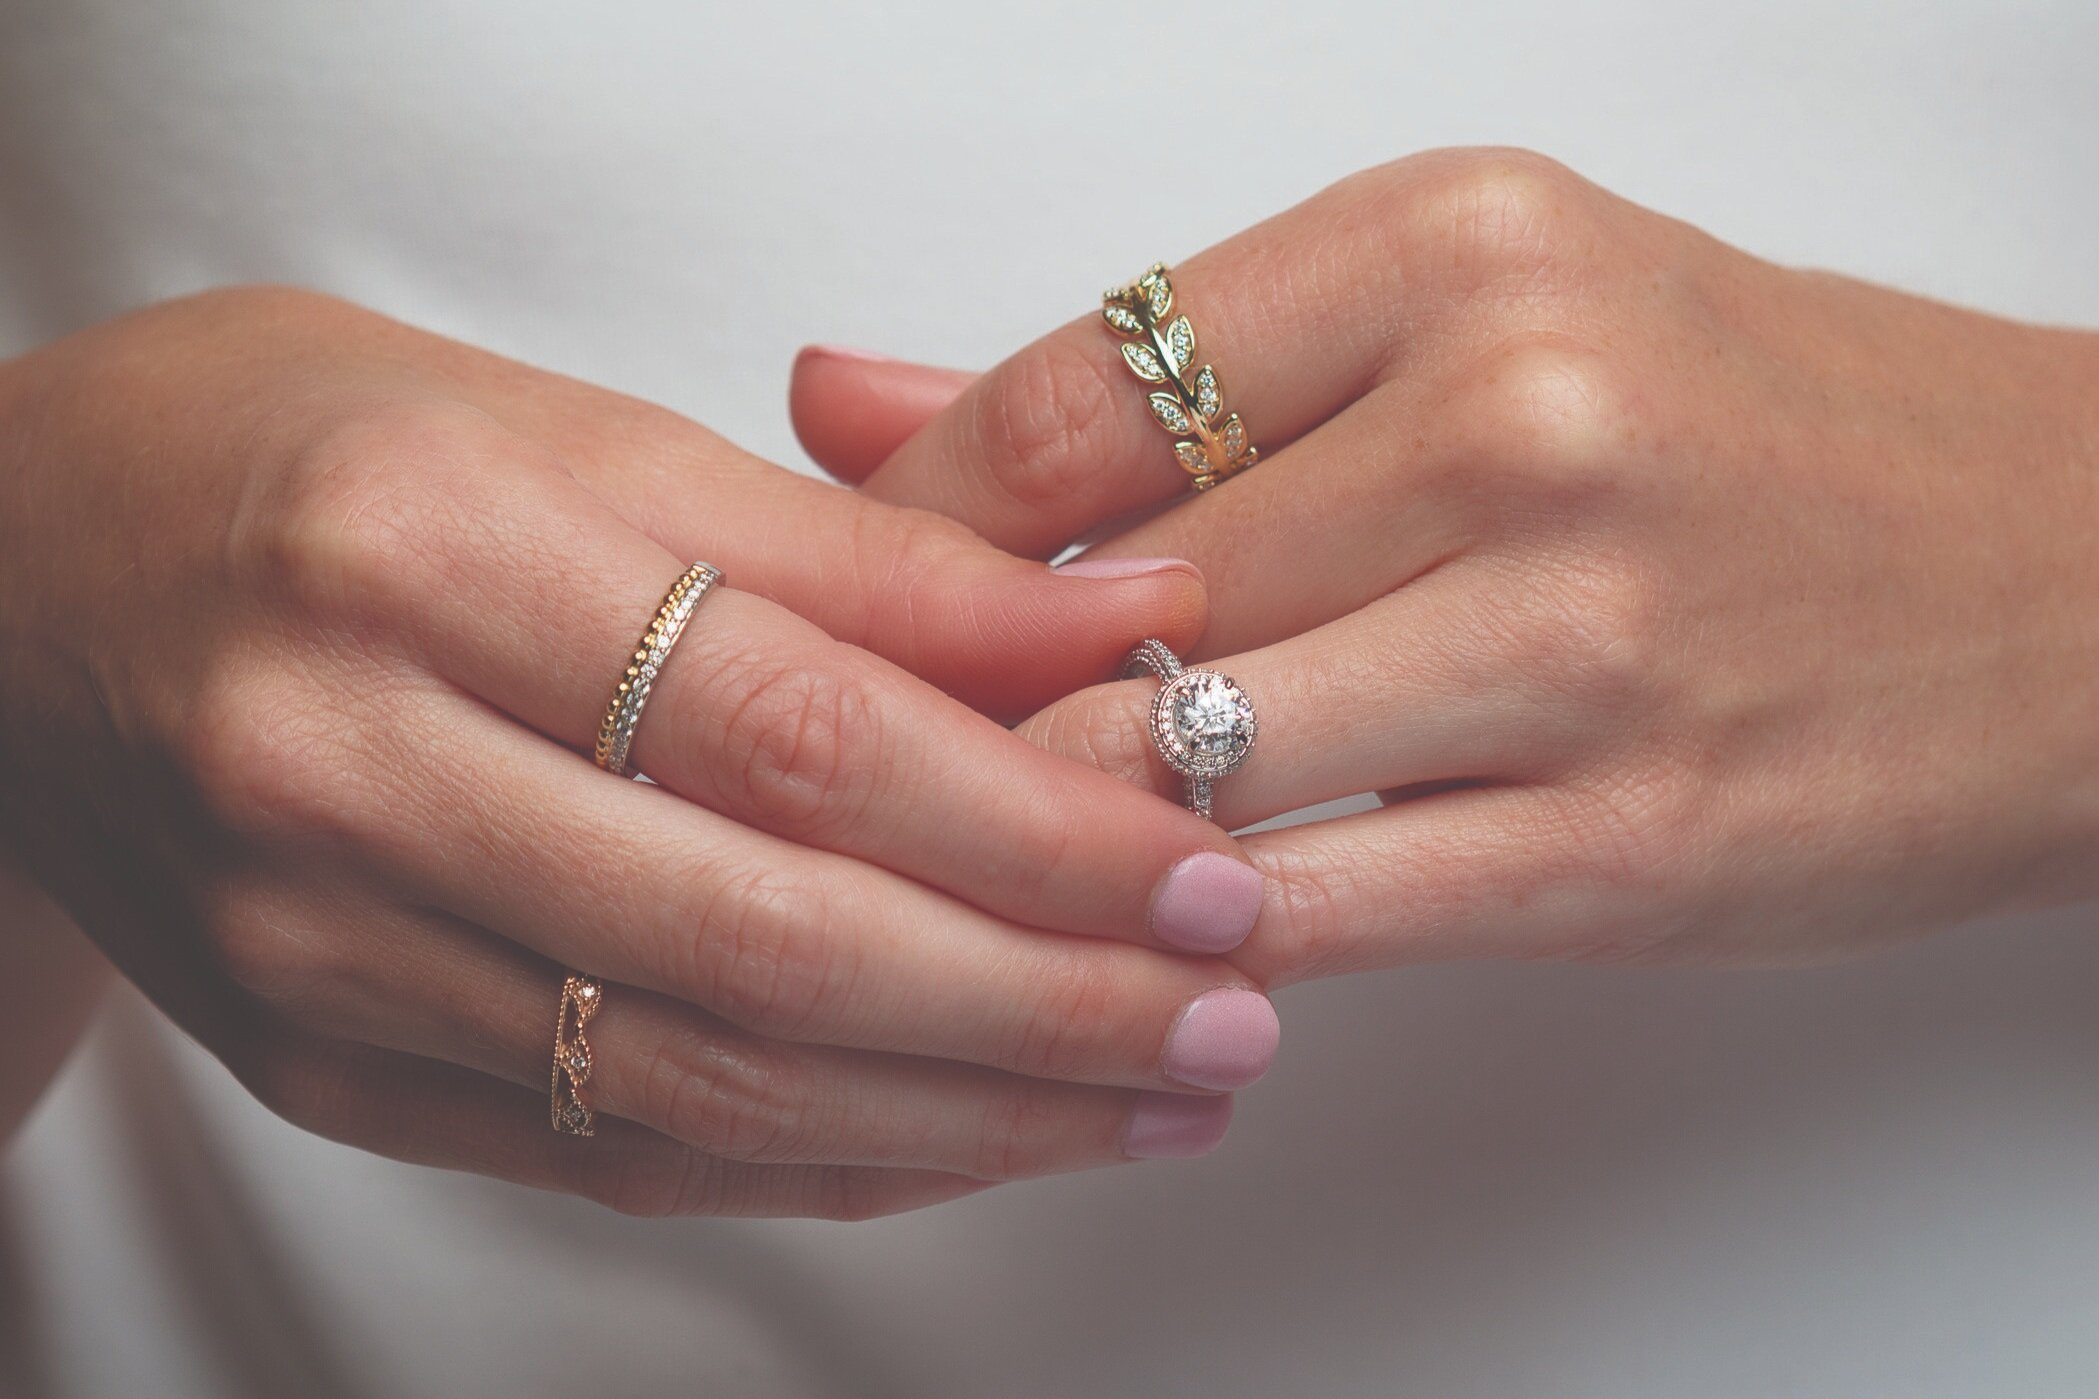 Polishing and Plating - Polishing and plating can be done in most items. As metals wear off with time, this method will leave your jewelry bright and sparkly again.Pricing from $70-180.